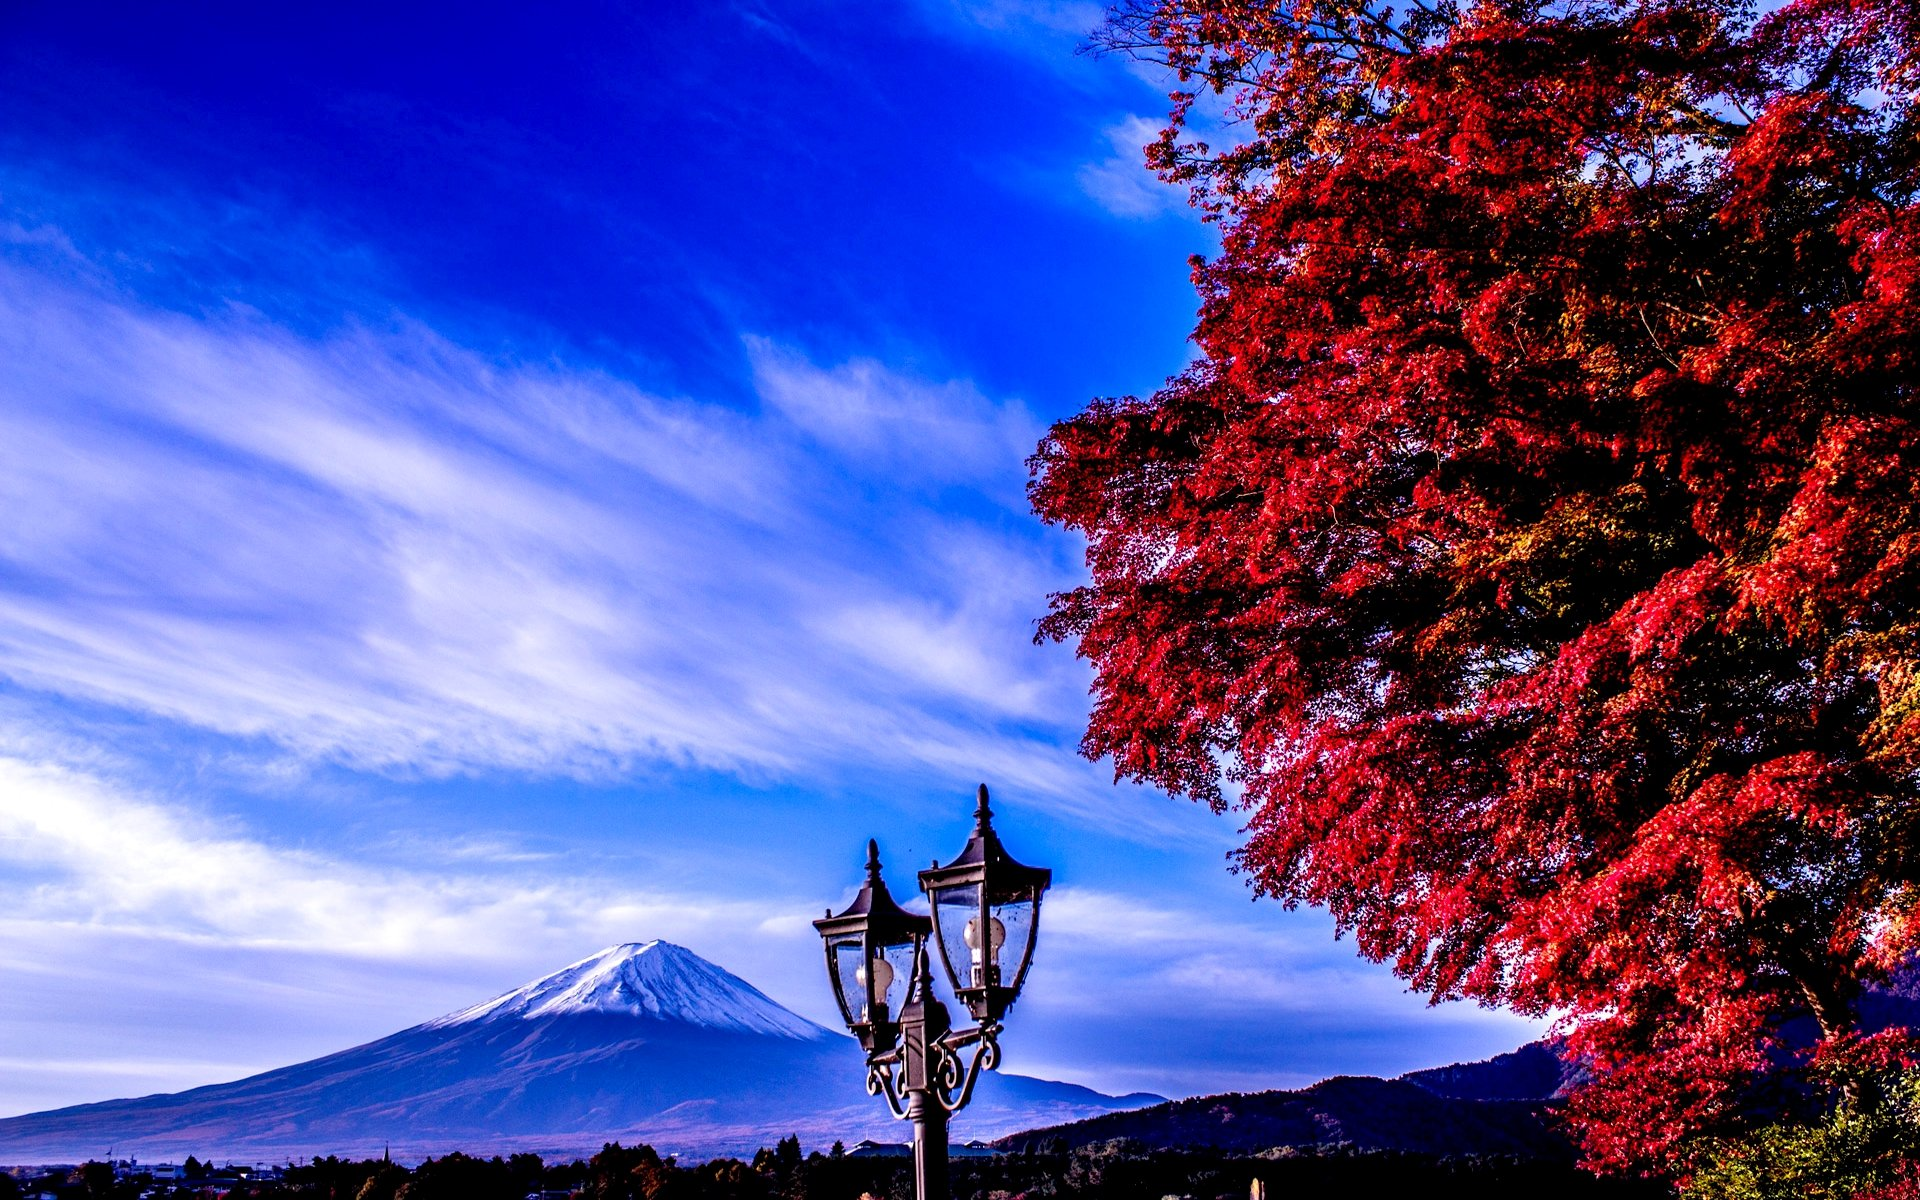 Mount Fuji High Resolution Wallpaper – Travel HD Wallpapers